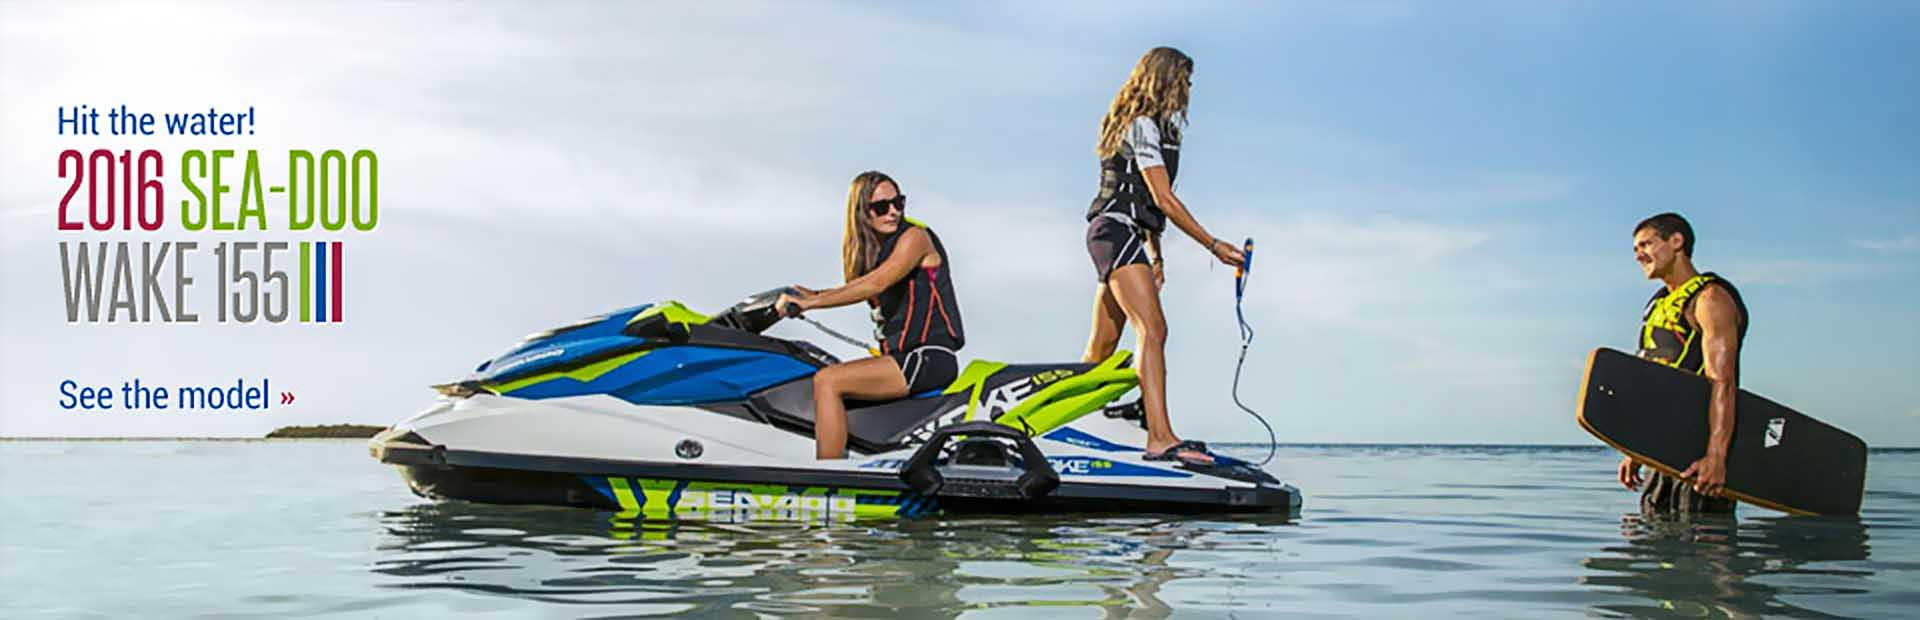 2016 Sea-Doo Wake 155: Click here to view the model.